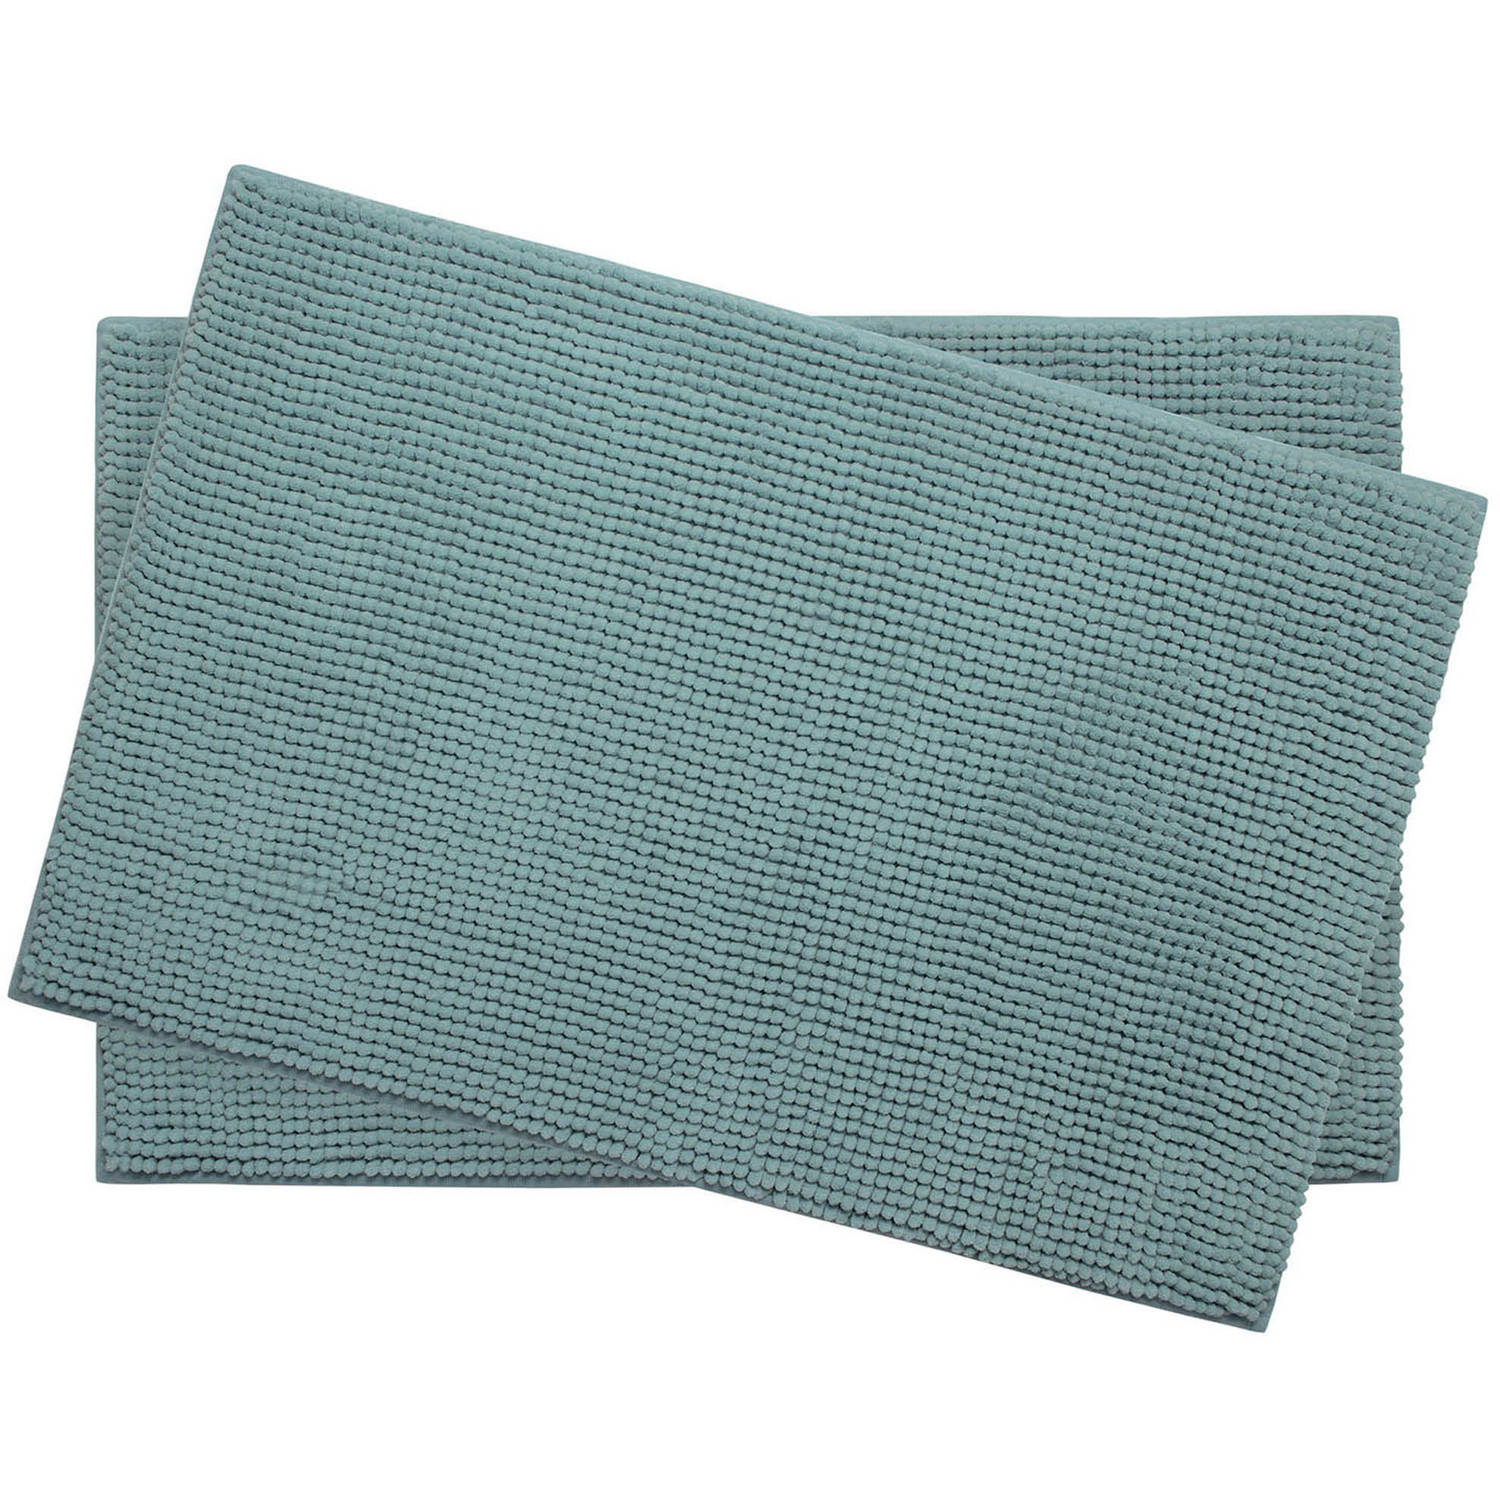 "Plush Memory Foam Chenille Cushioned 17"" x 24"" 2-Piece Bath Mat with Bounce Comfort Technology"